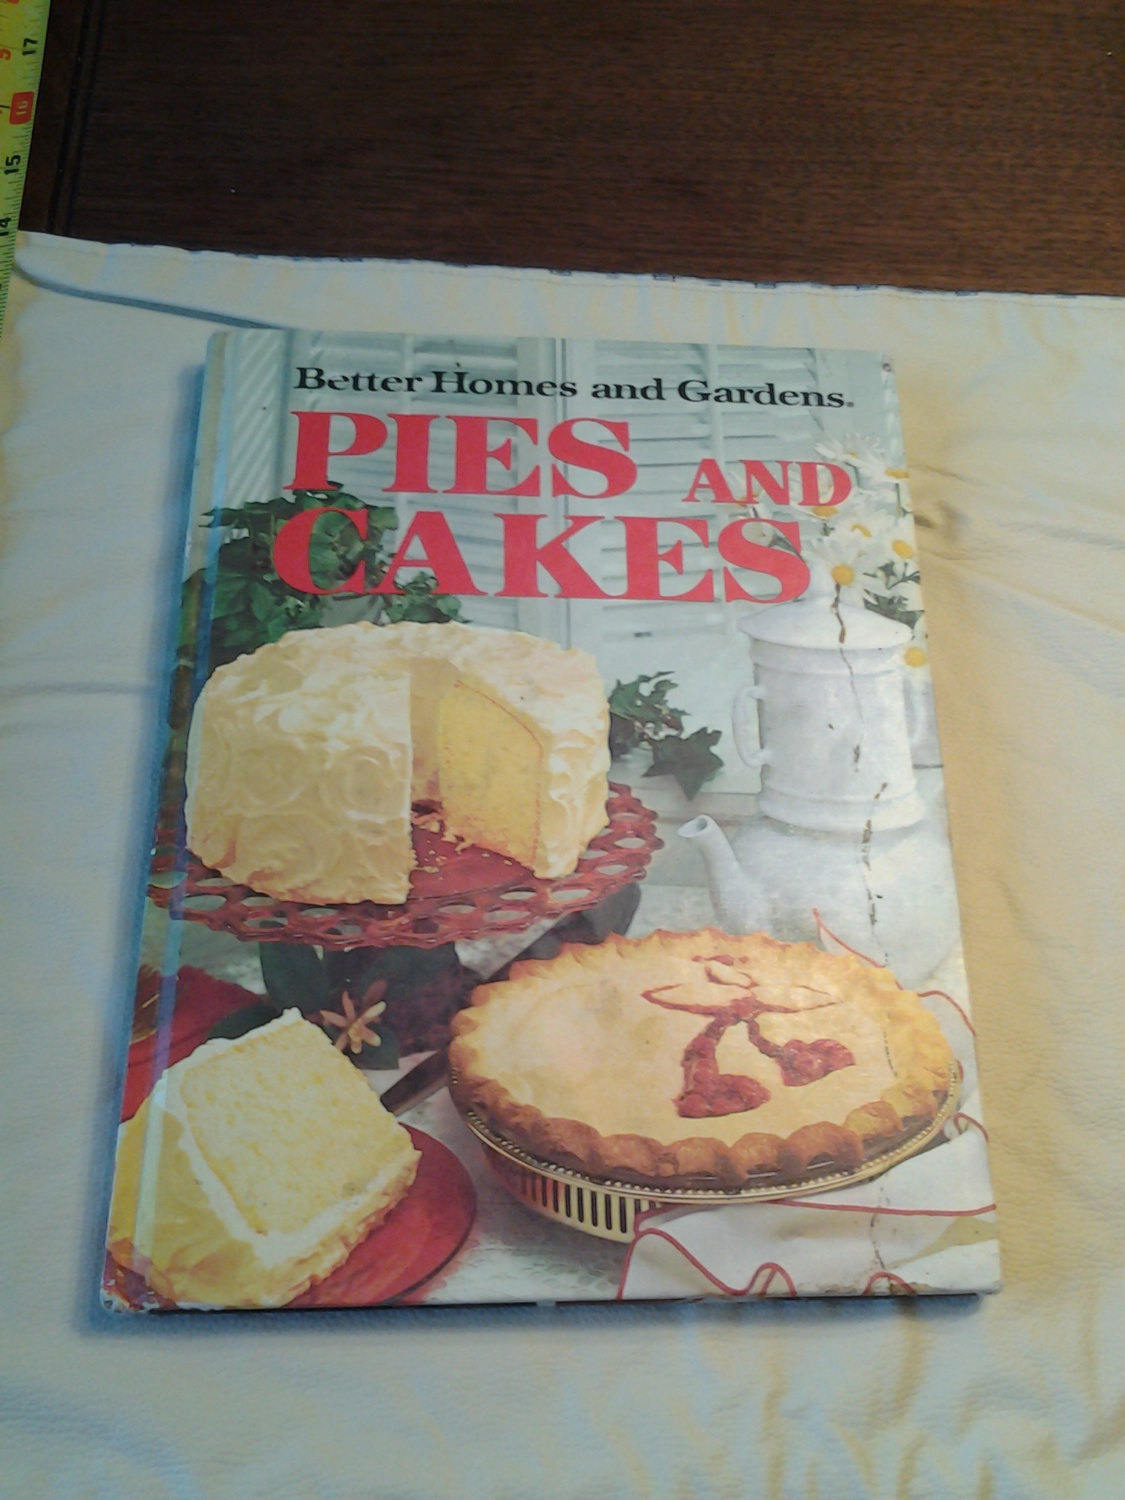 pies and cakes cookbook design example